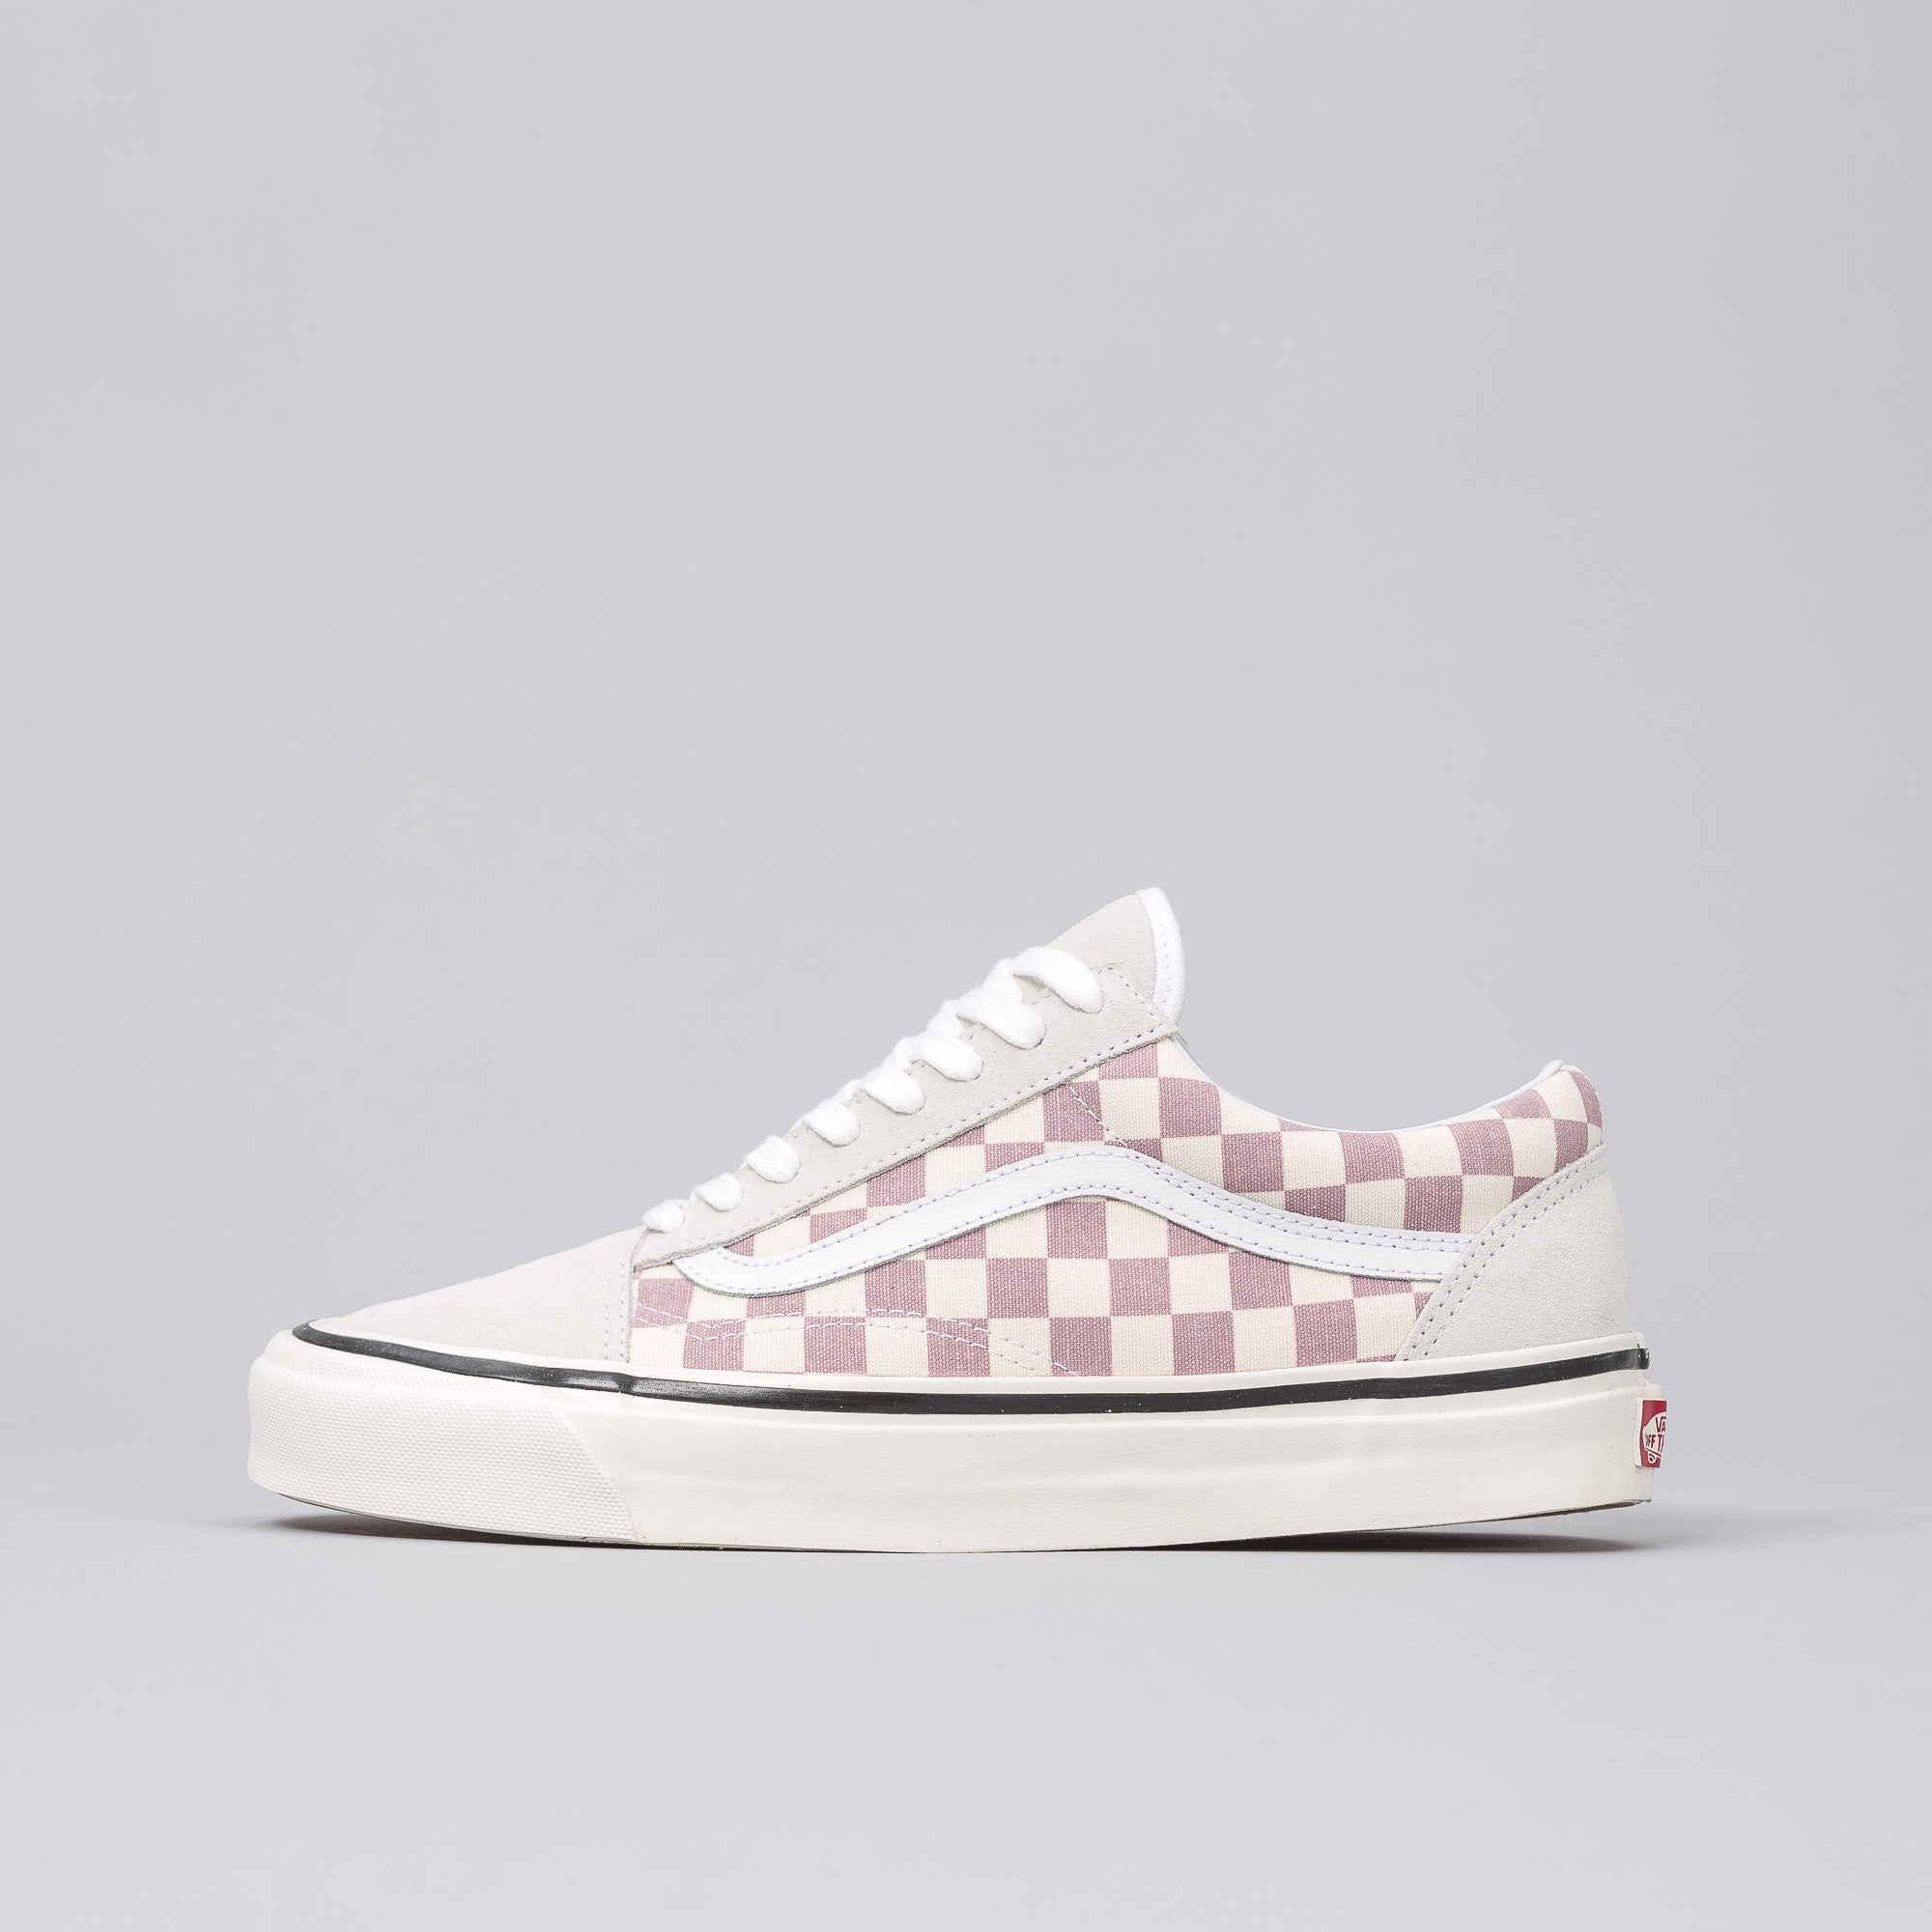 64c2777a7478 Buy red vans old skool checkerboard